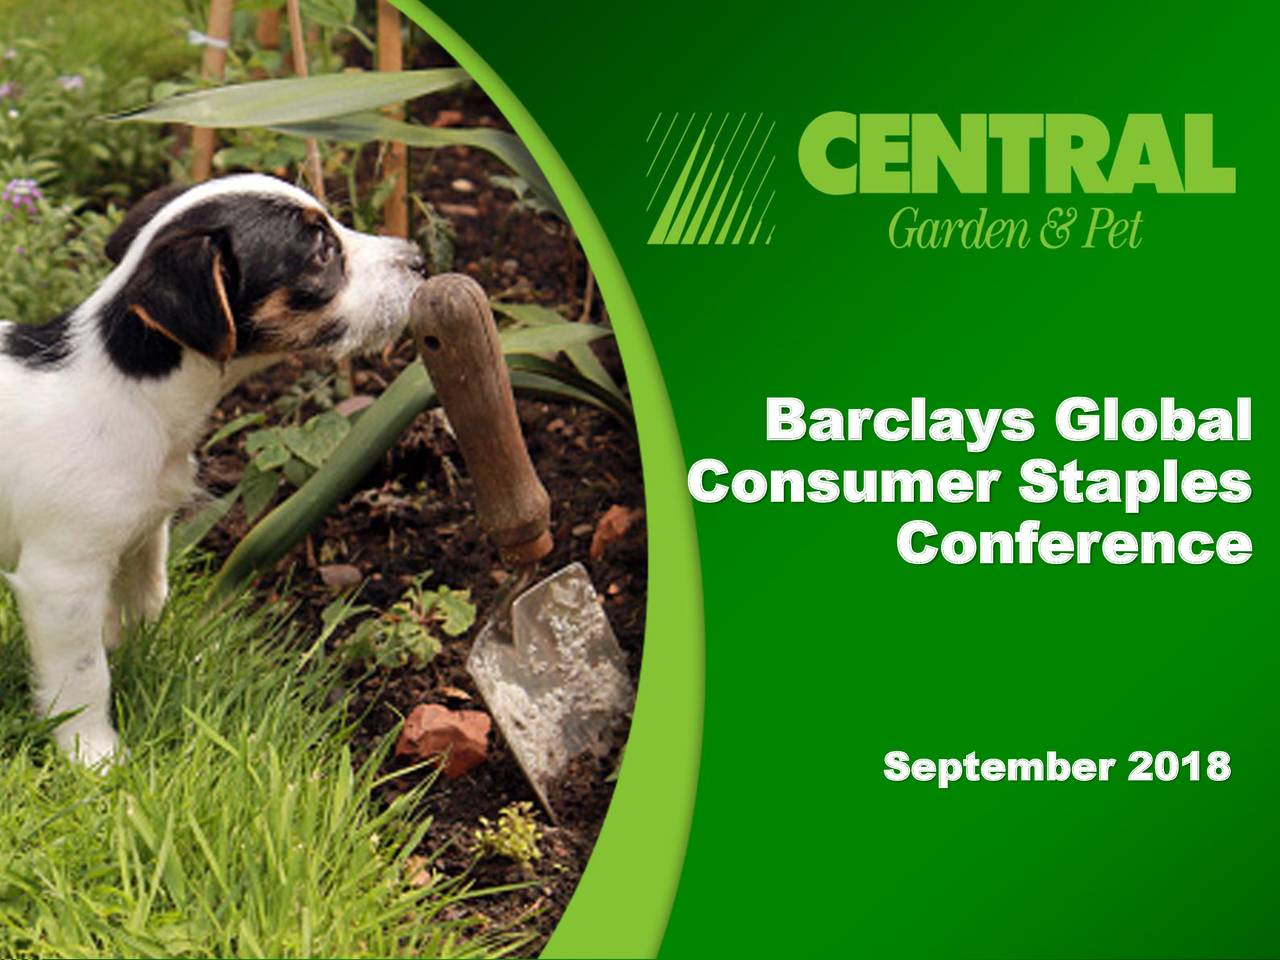 consumer staples conference september 2018 - Central Garden And Pet